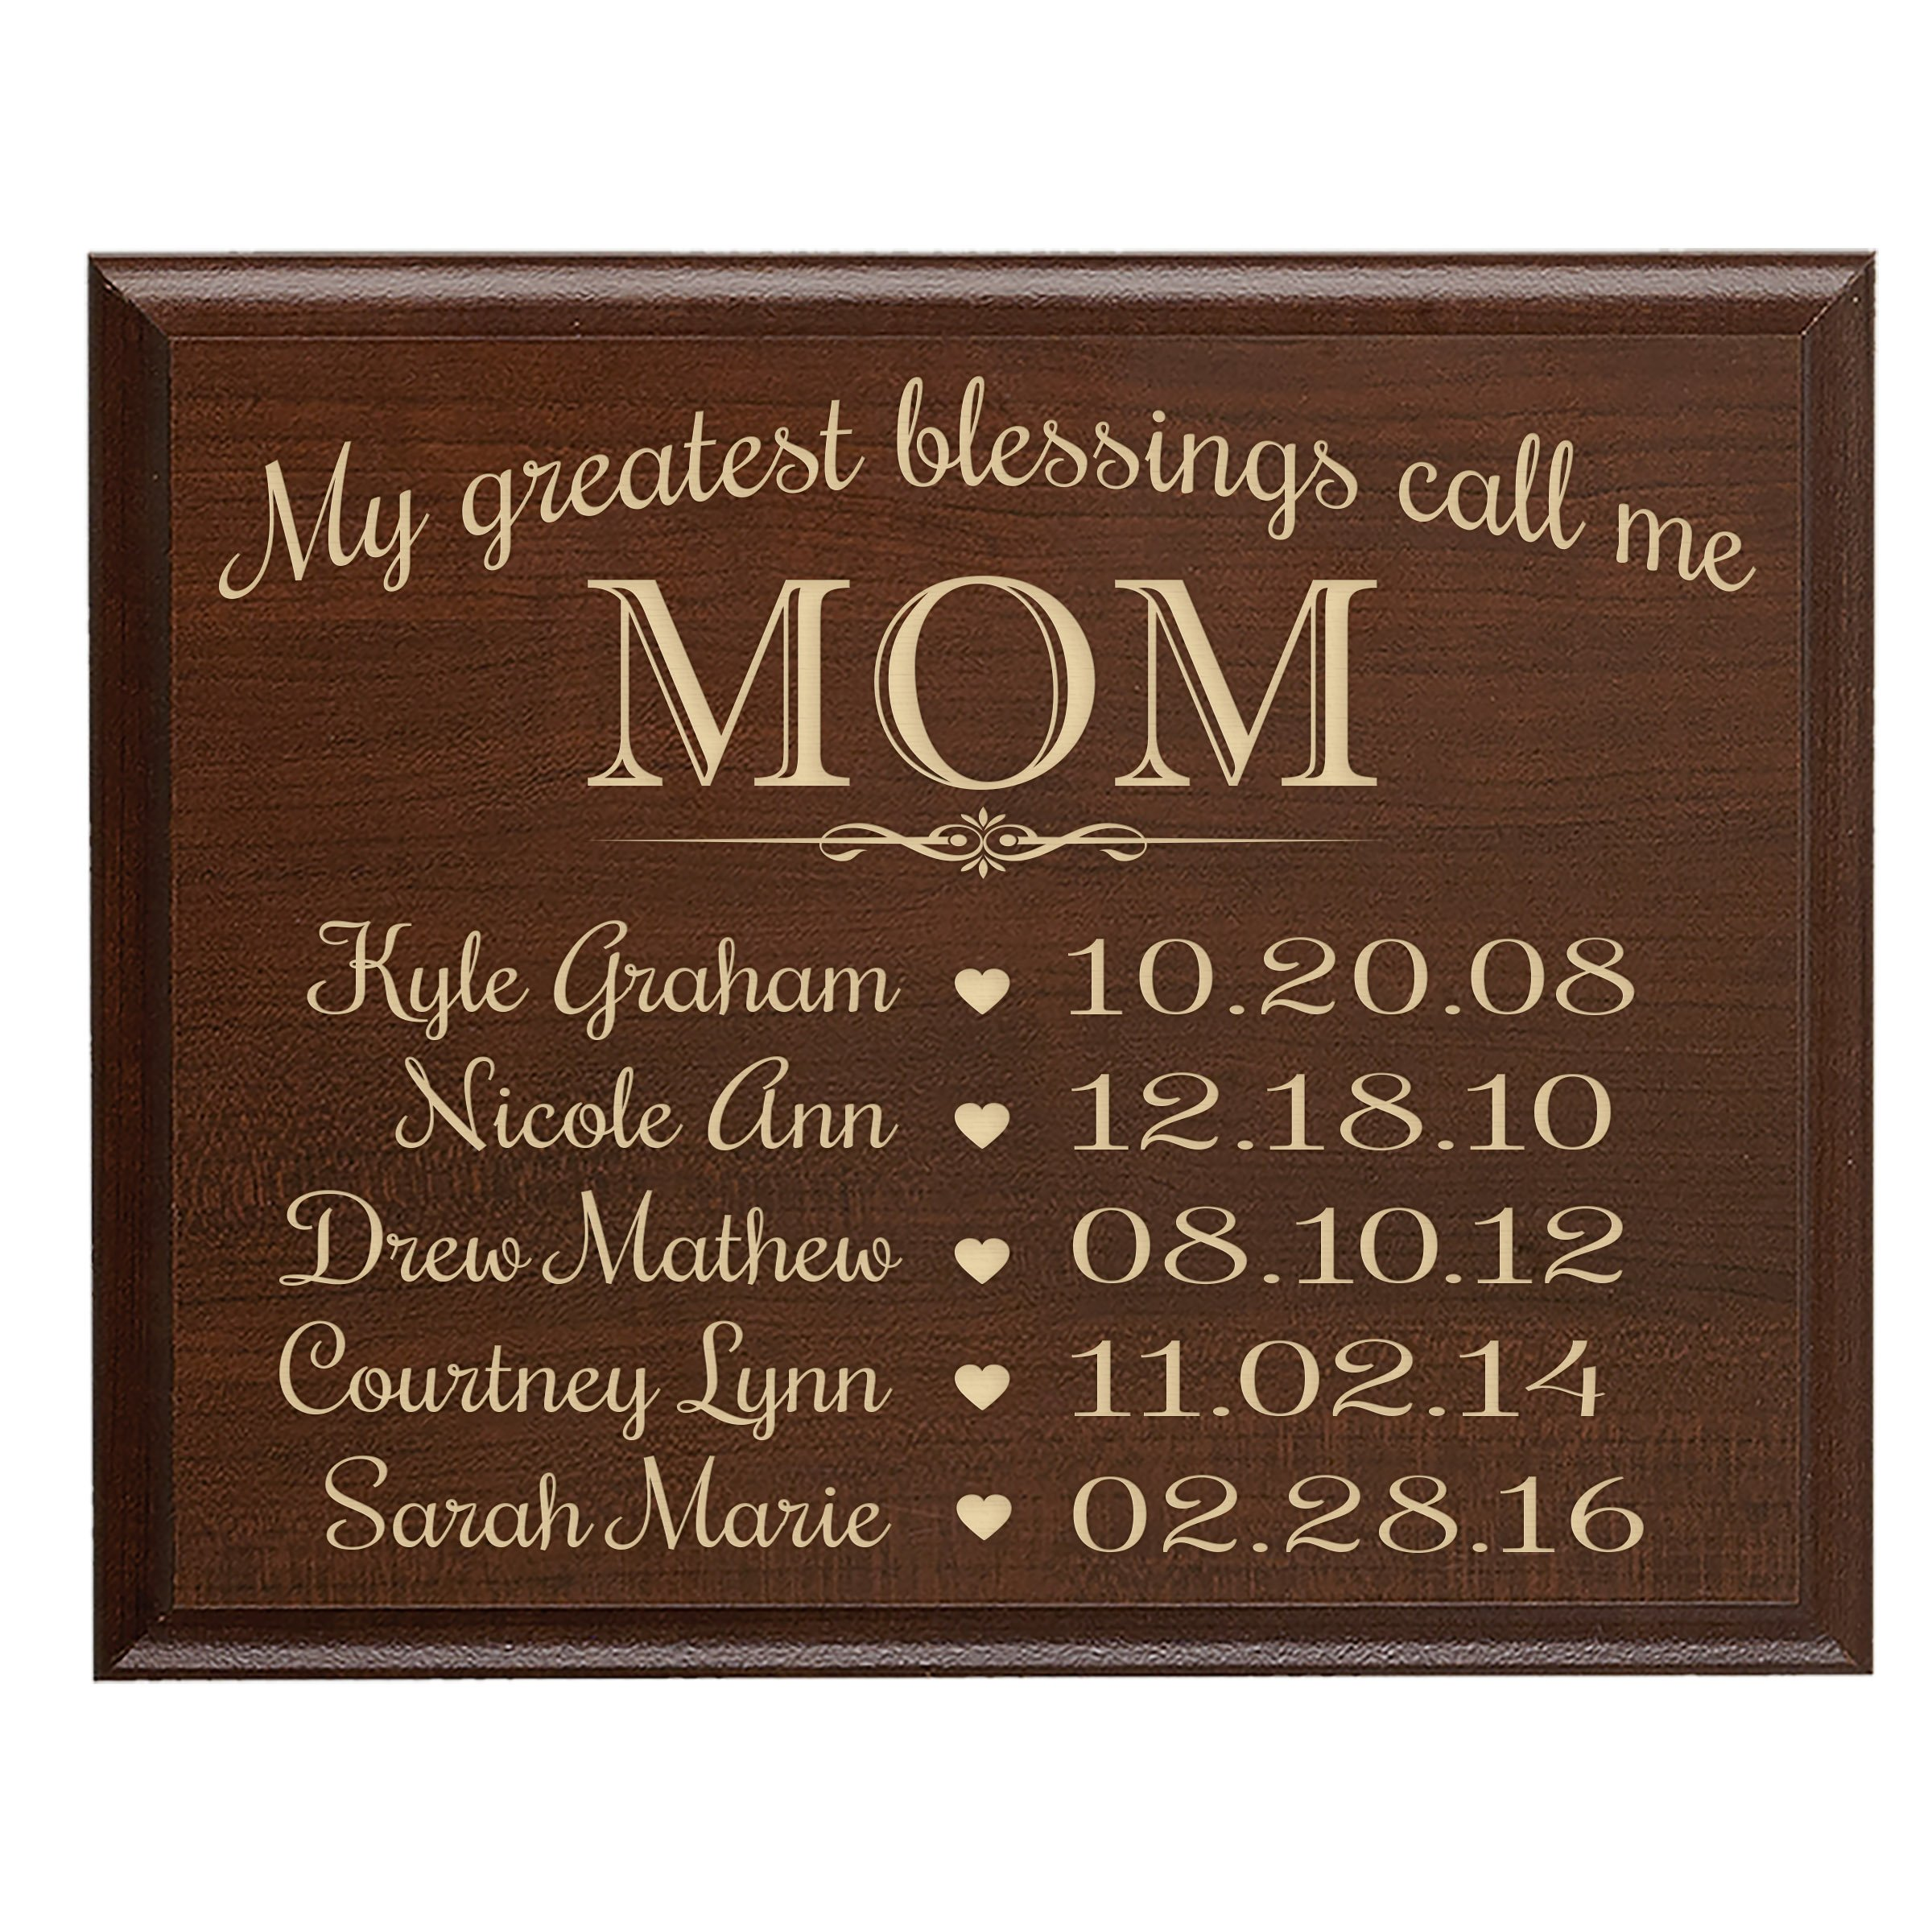 LifeSong Milestones Personalized Gifts for Mom with Family Established Year Wall Plaque with Children's Names and Dates to Remember My Greatest Blessings Call me Mom (12x15, Cherry) by LifeSong Milestones (Image #1)